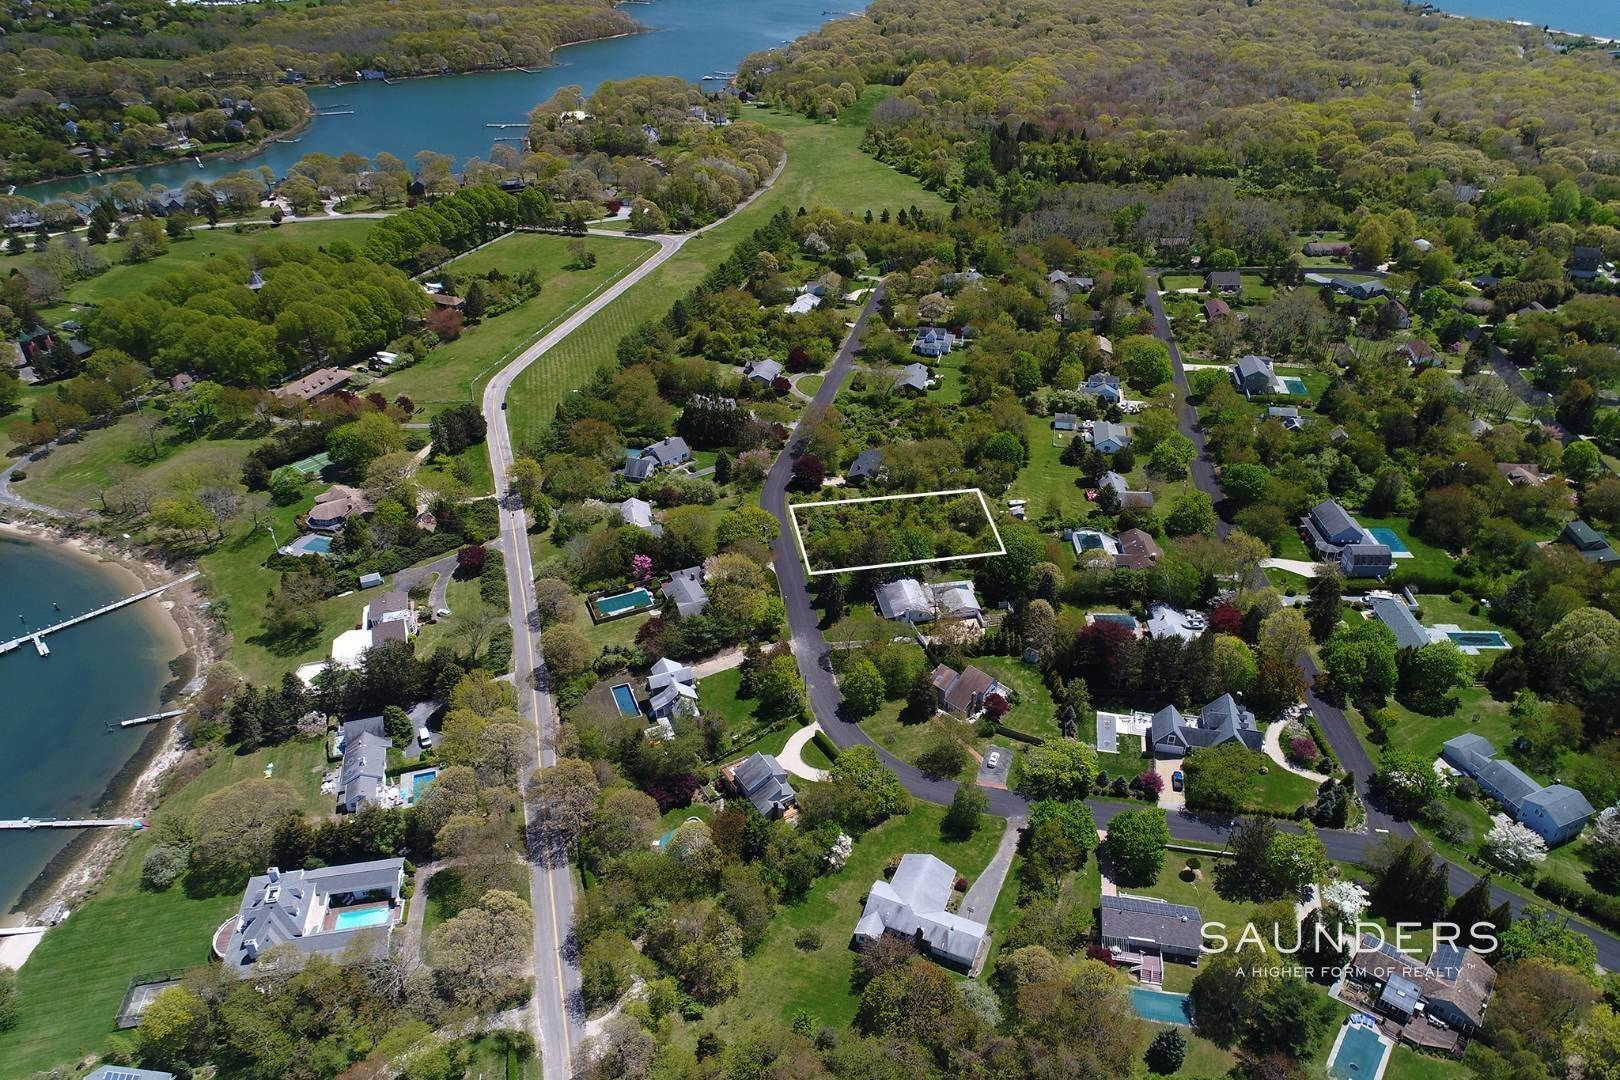 Land for Sale at Shelter Island Idyllic Country Acreage 4 Tims Trail, Shelter Island Heights, Shelter Island, NY 11964